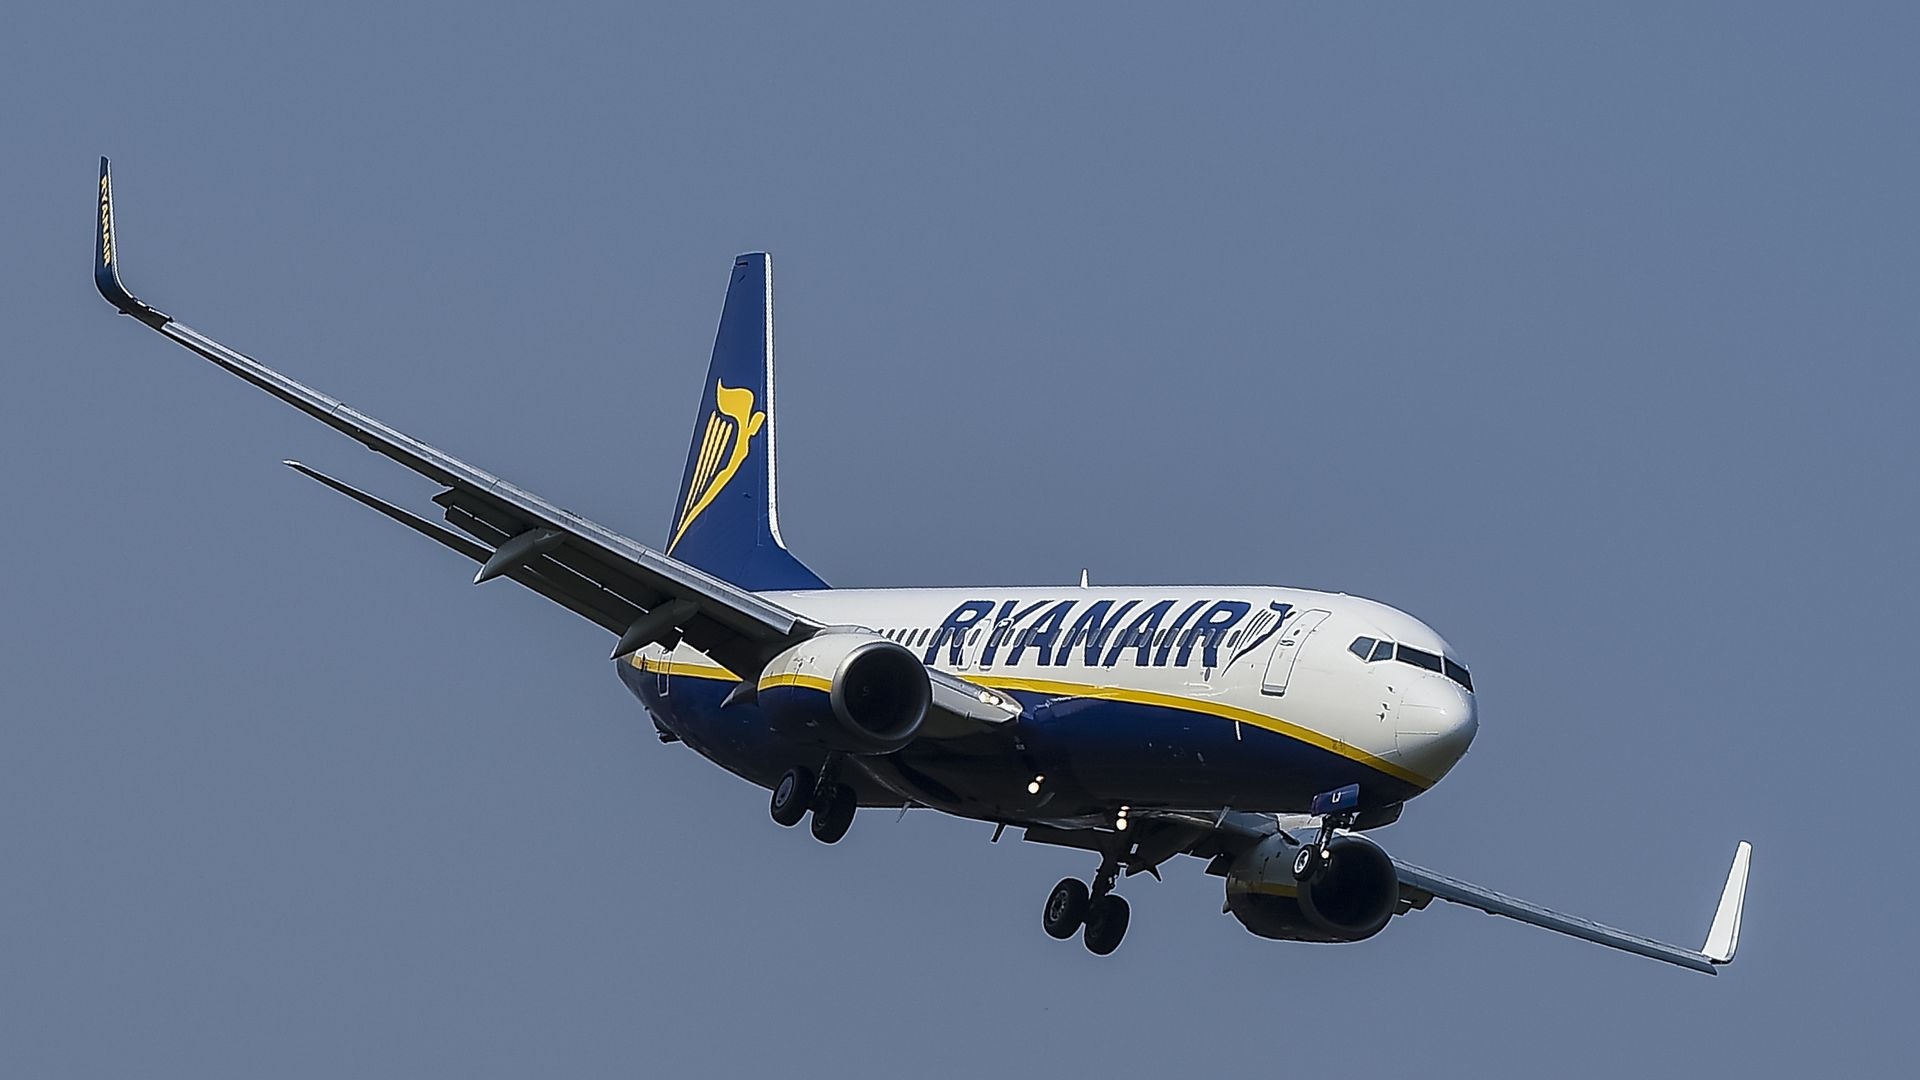 A Ryanair Boeing 737-800 aircraft approches